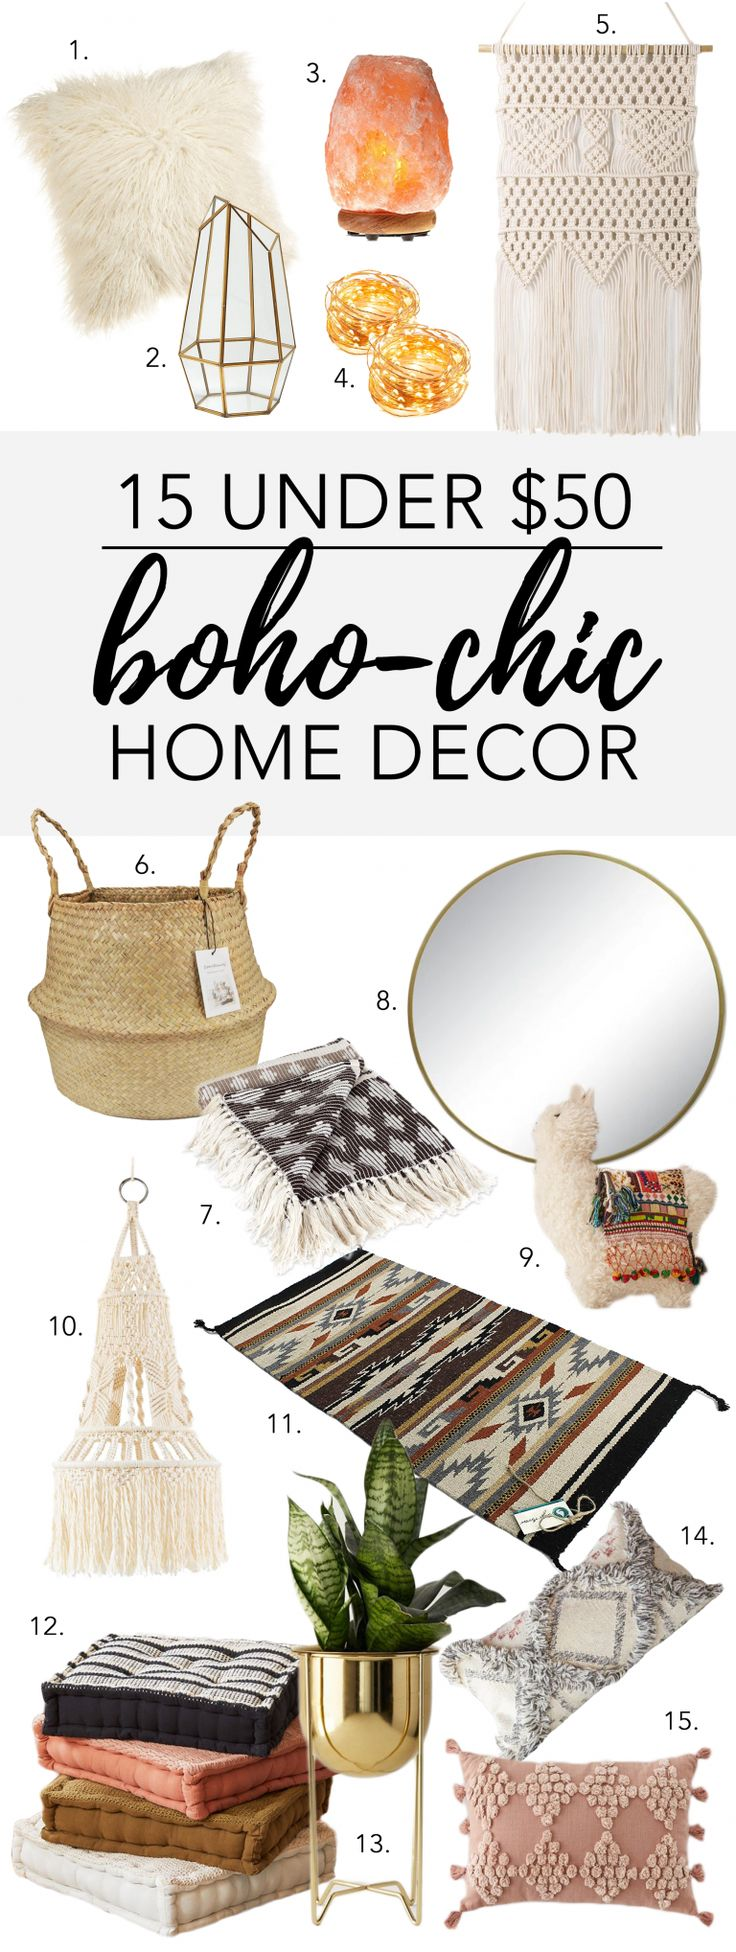 15 UNDER $50: BOHO-CHIC HOME DECOR Boho-chic home …